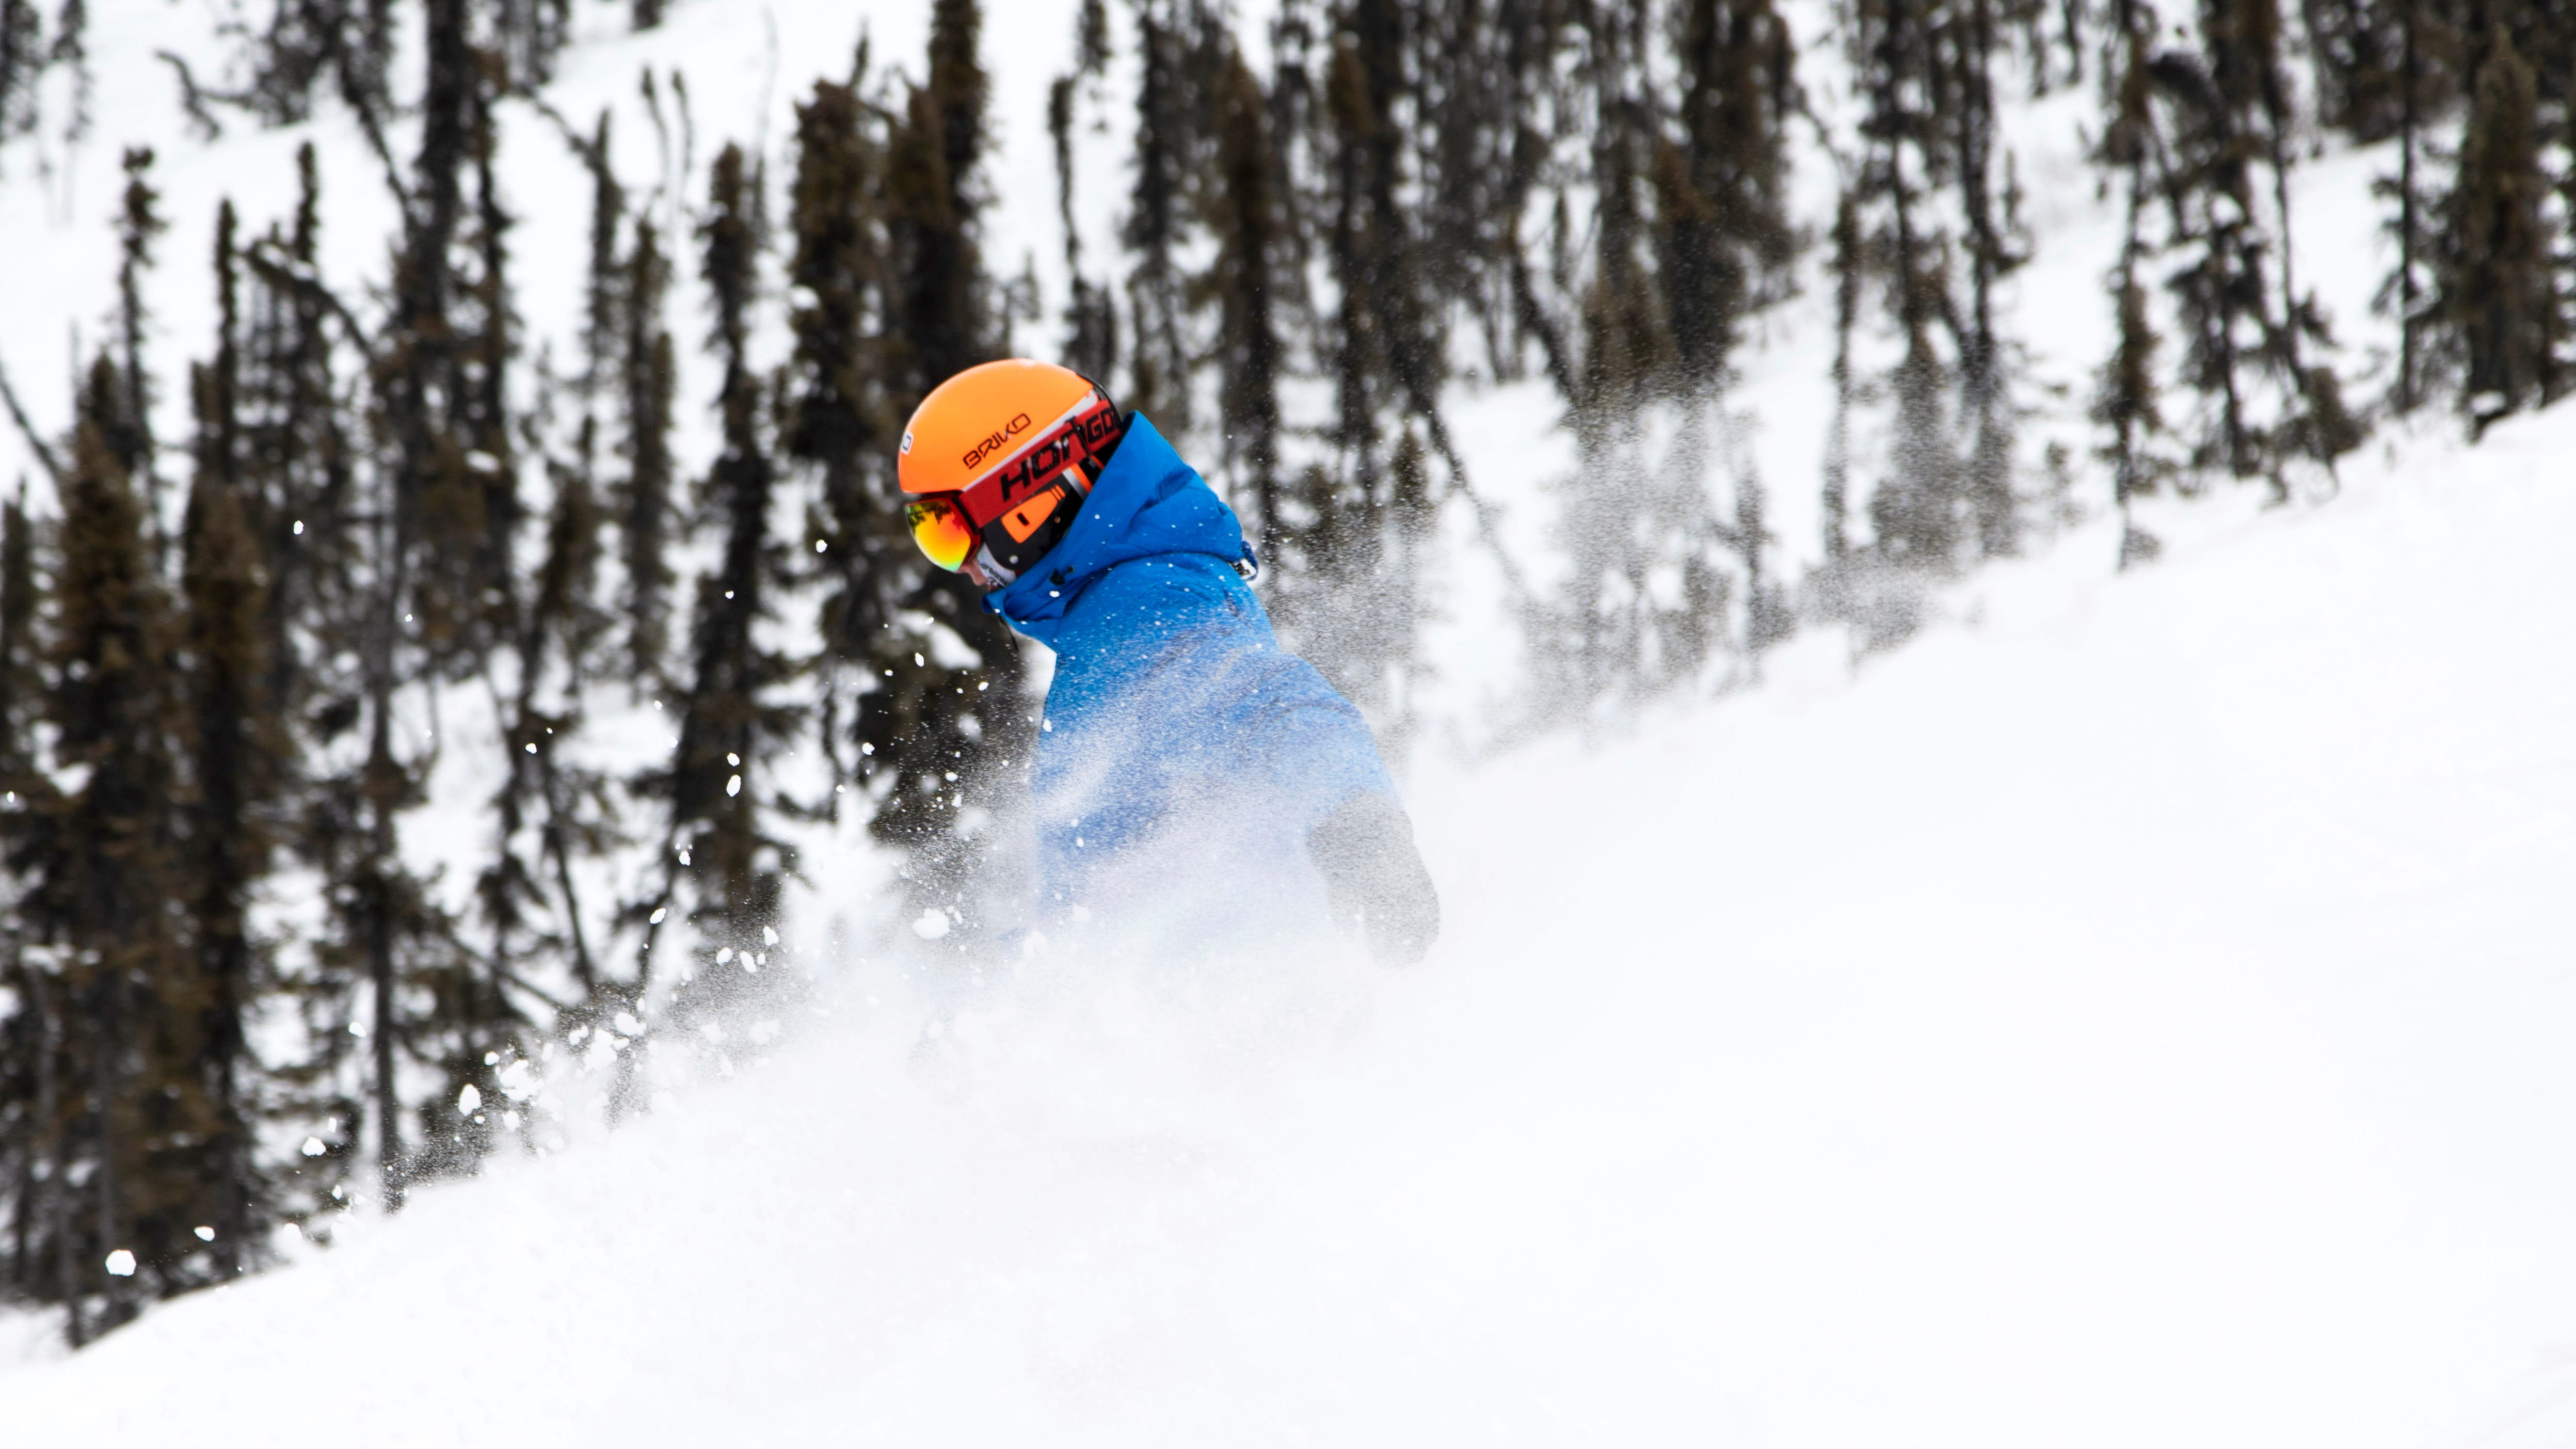 How safe are winter outdoor activities during the pandemic?